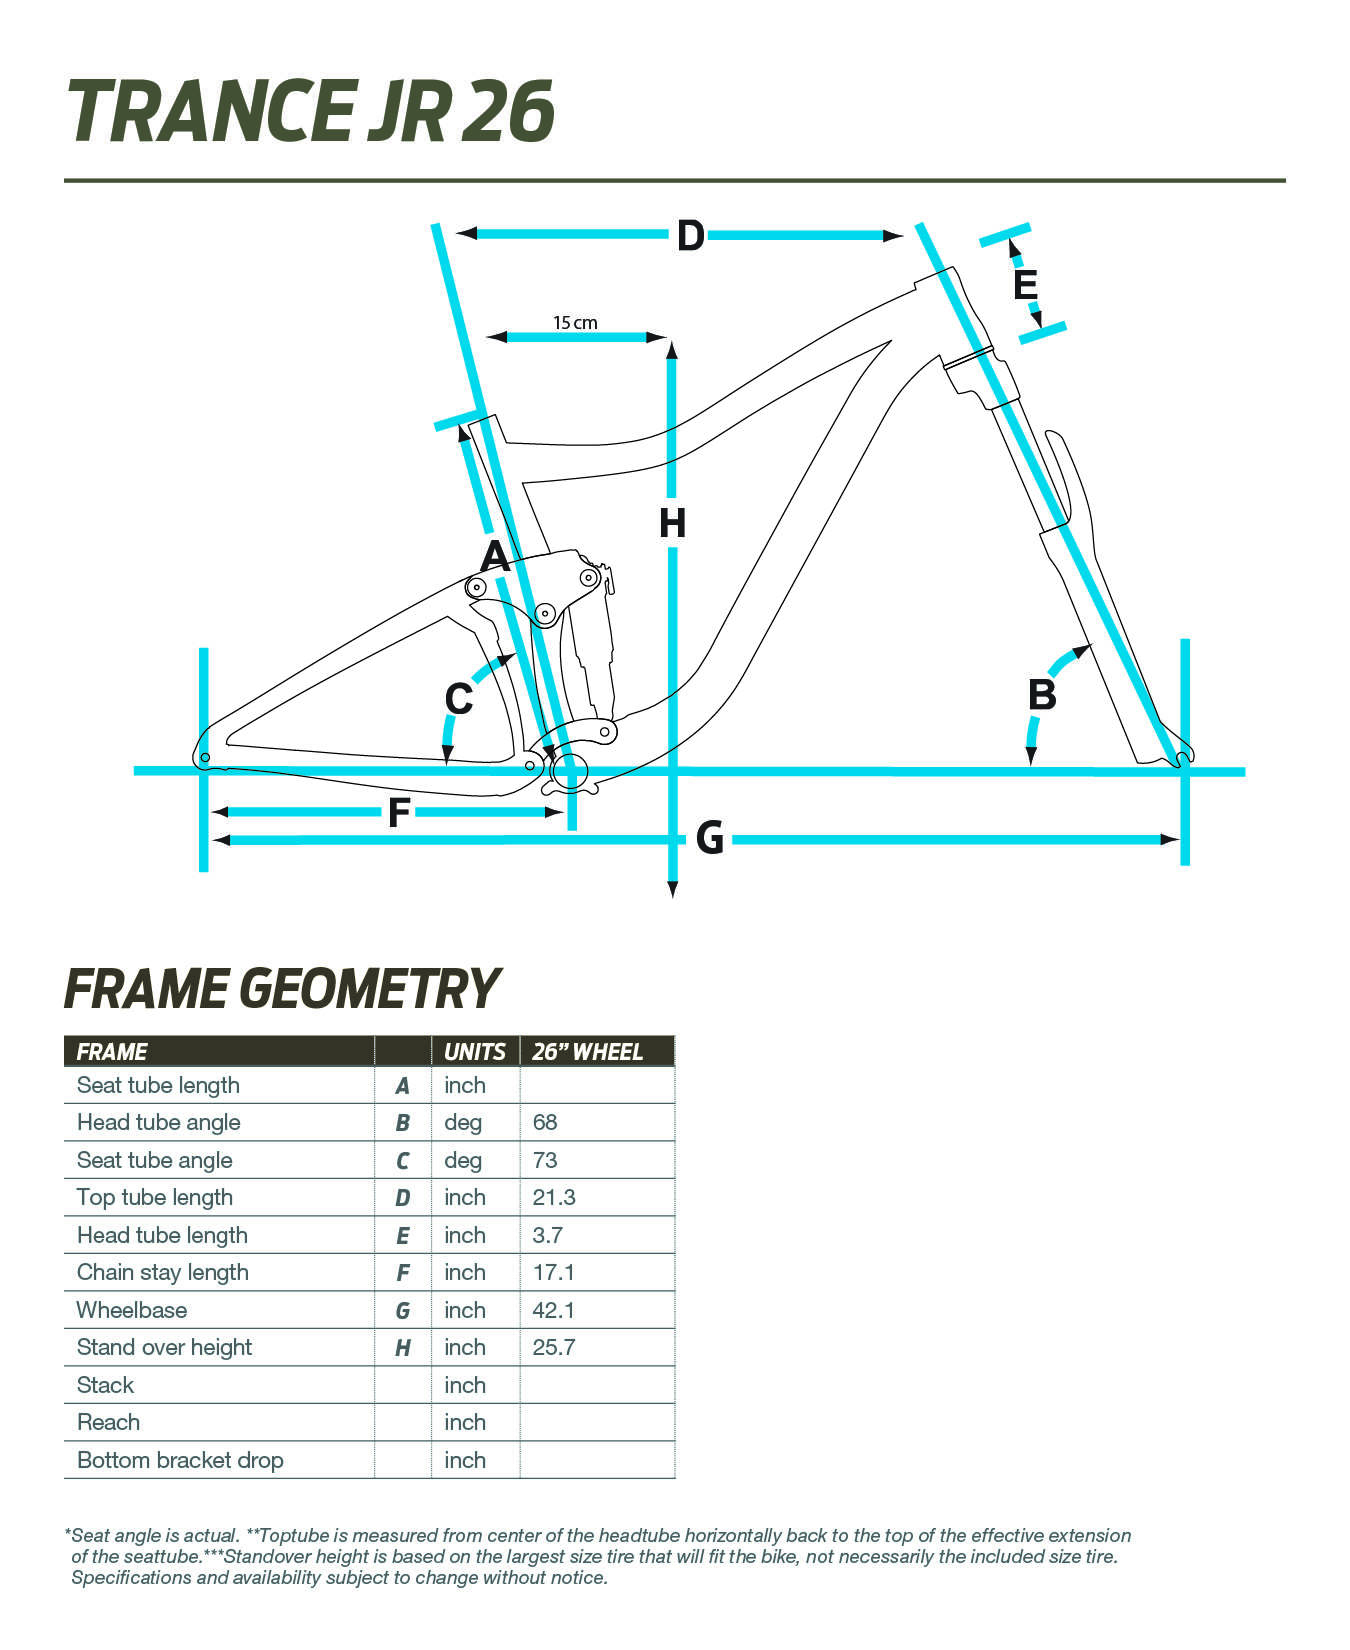 Giant Trance Jr 26 geometry chart